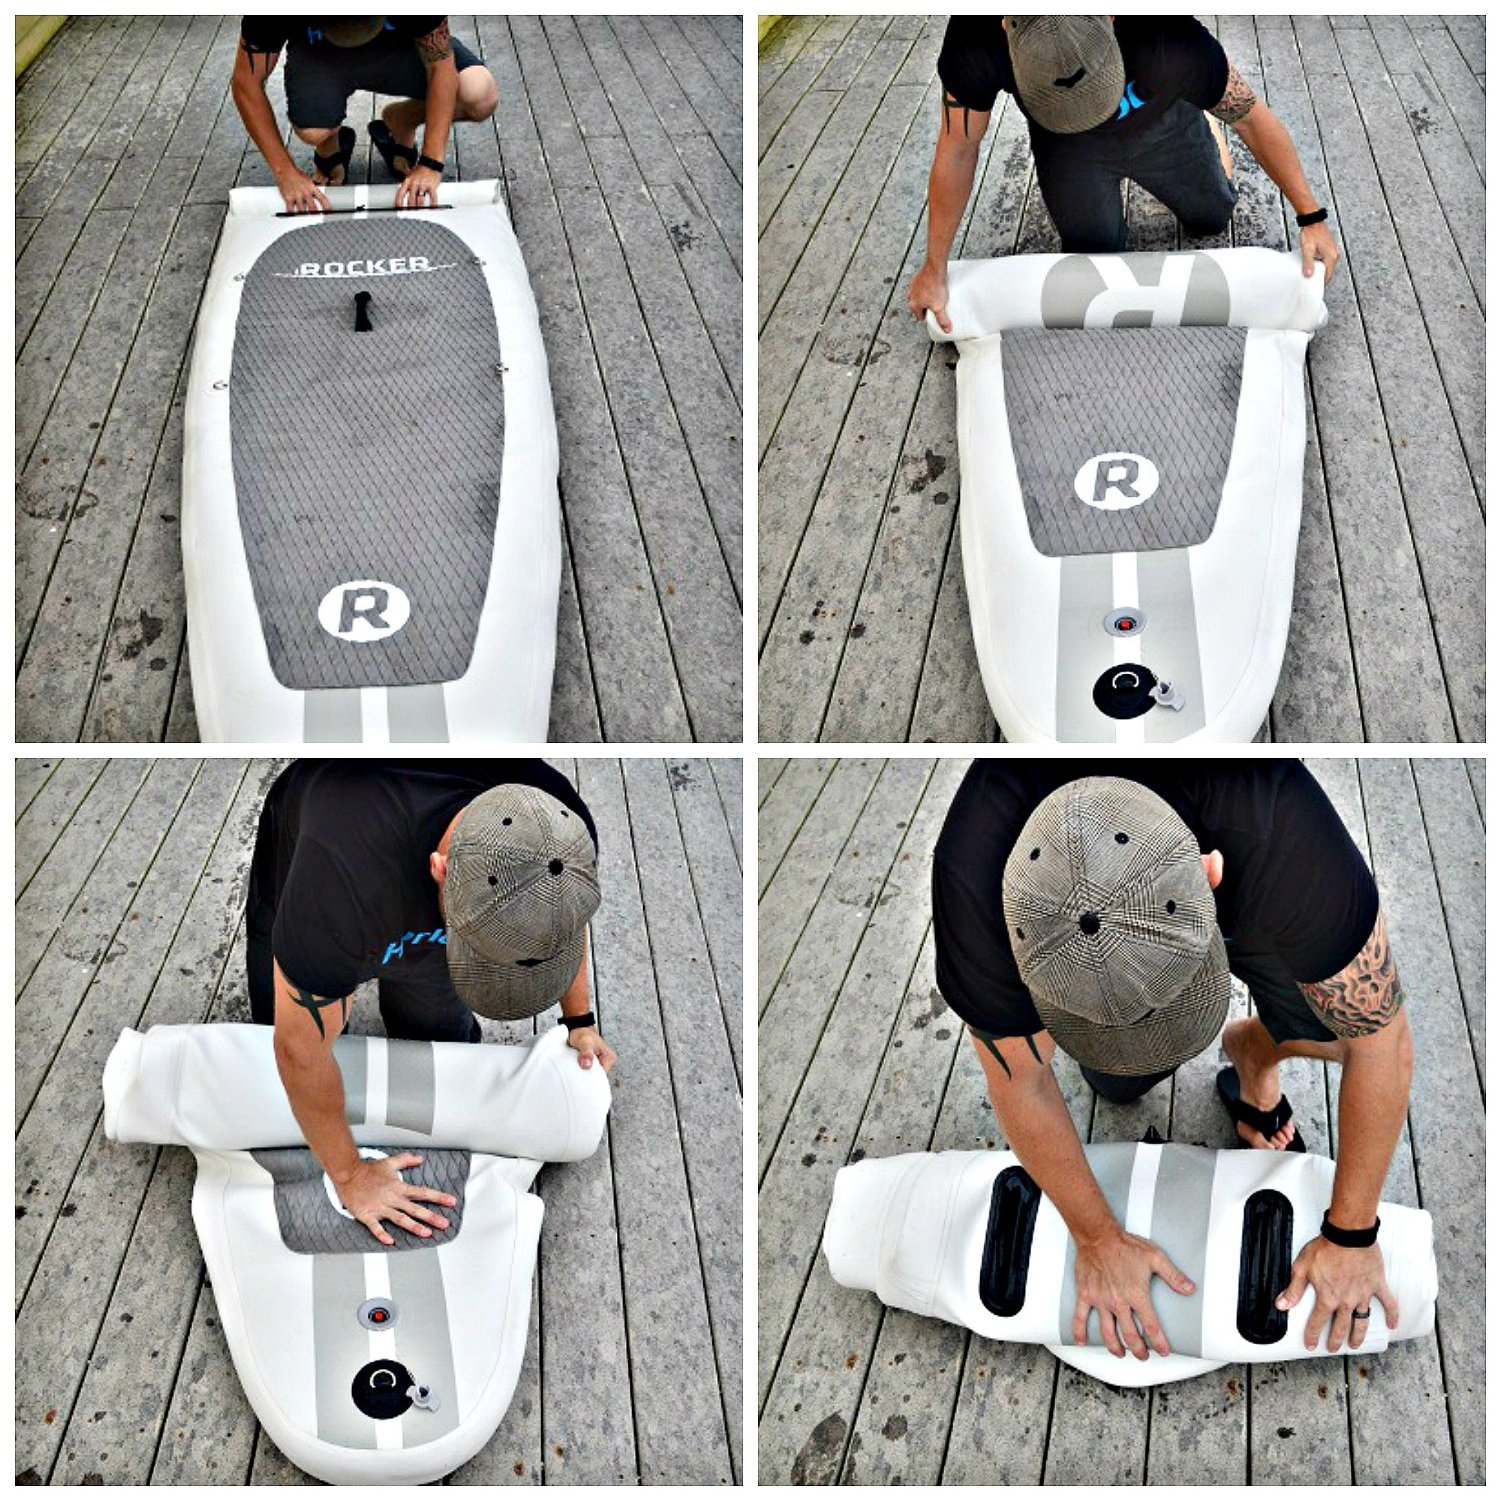 iRocker 11' Inflatable Stand Up Paddle Board Review